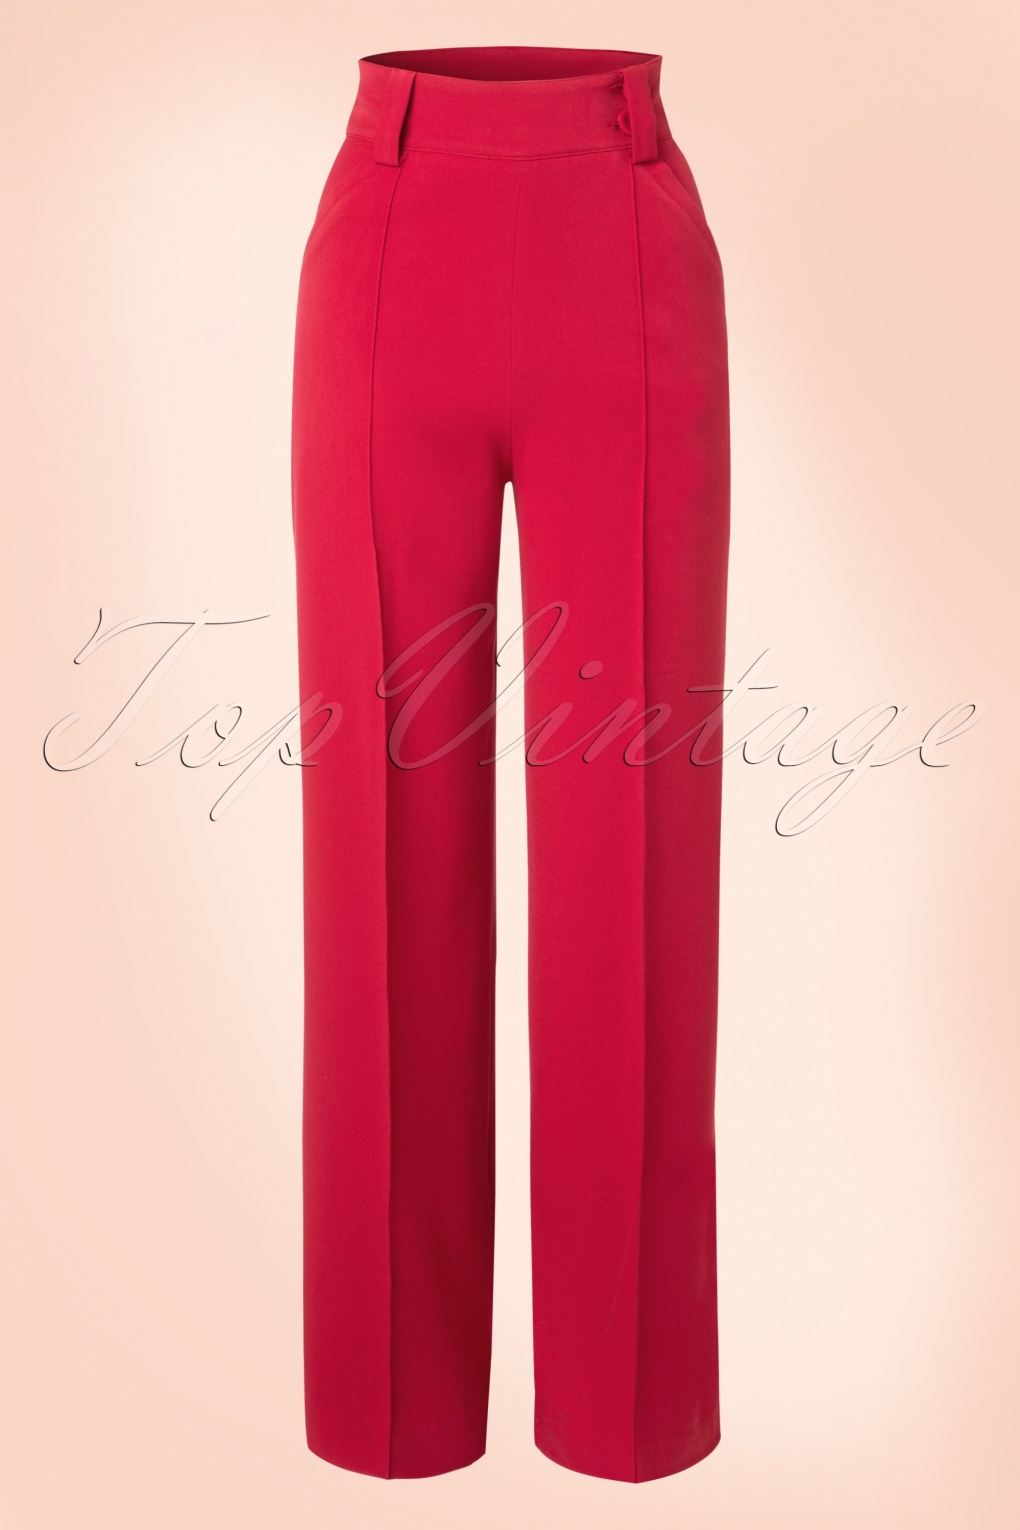 1940s Style Pants & Overalls- Wide Leg, High Waist 40s Melissa Trousers in Red £63.62 AT vintagedancer.com